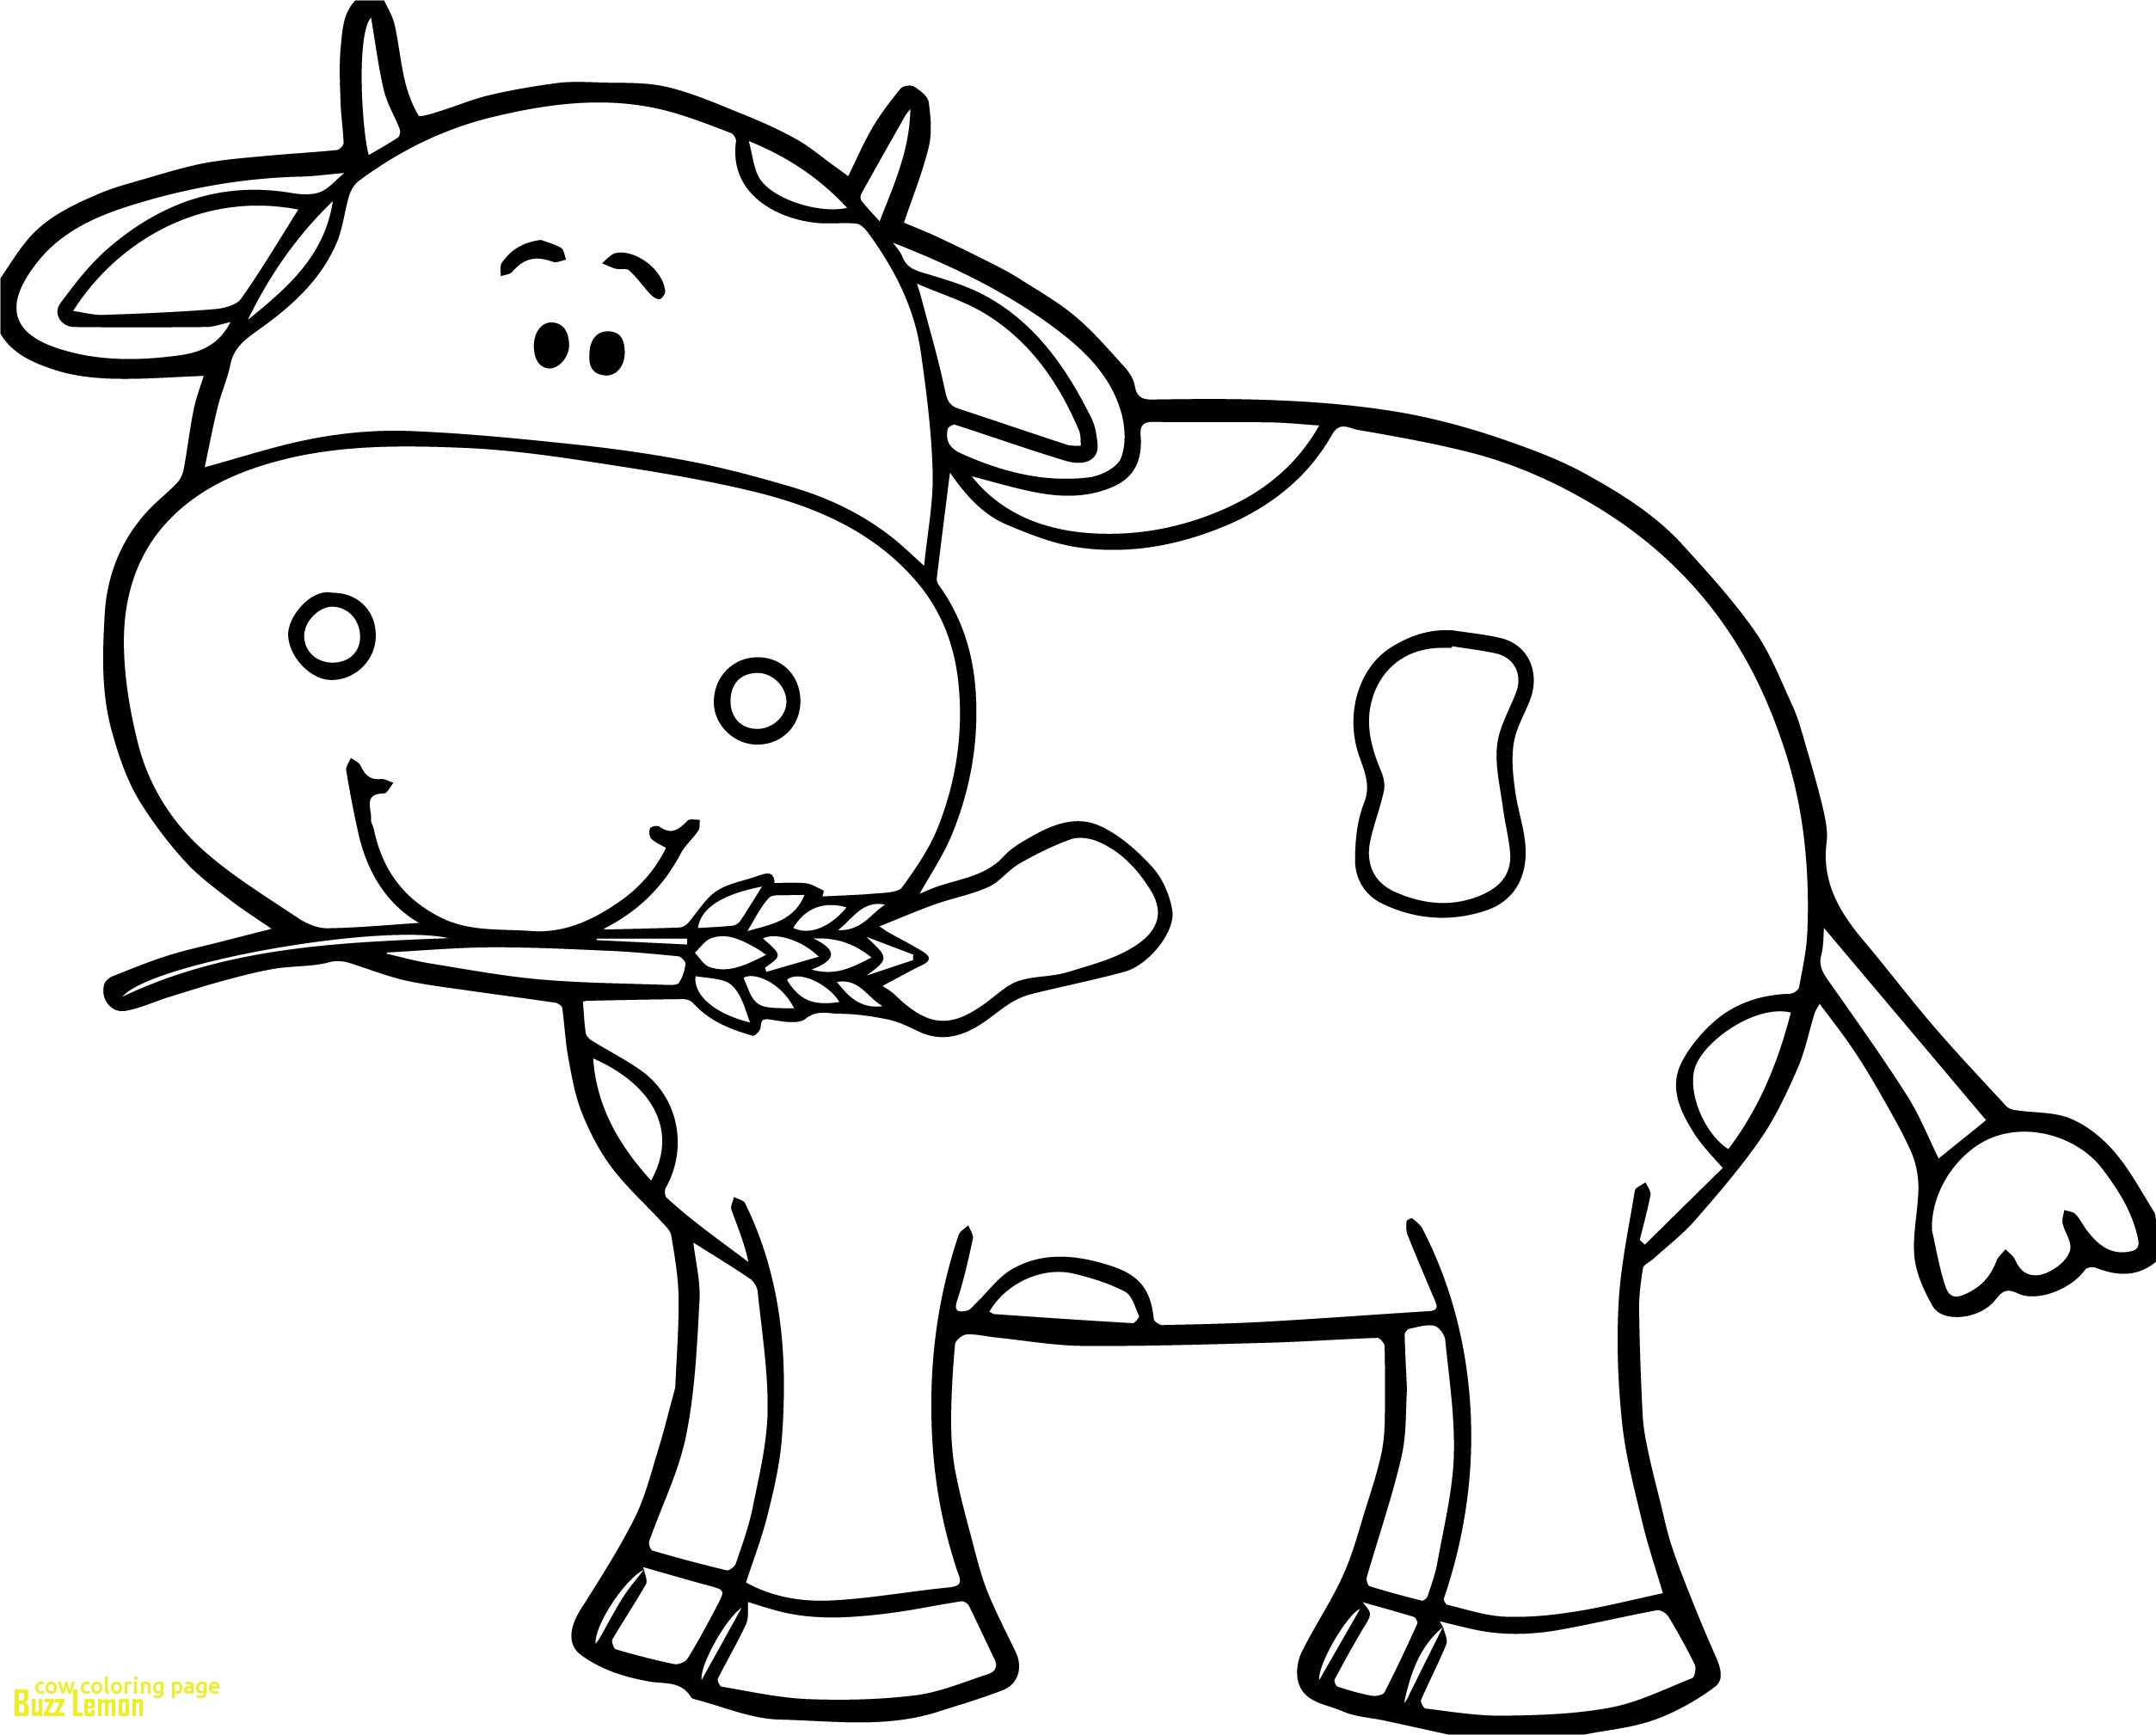 2507x2018 Reduced Coloring Page Of A Cow New Buzz